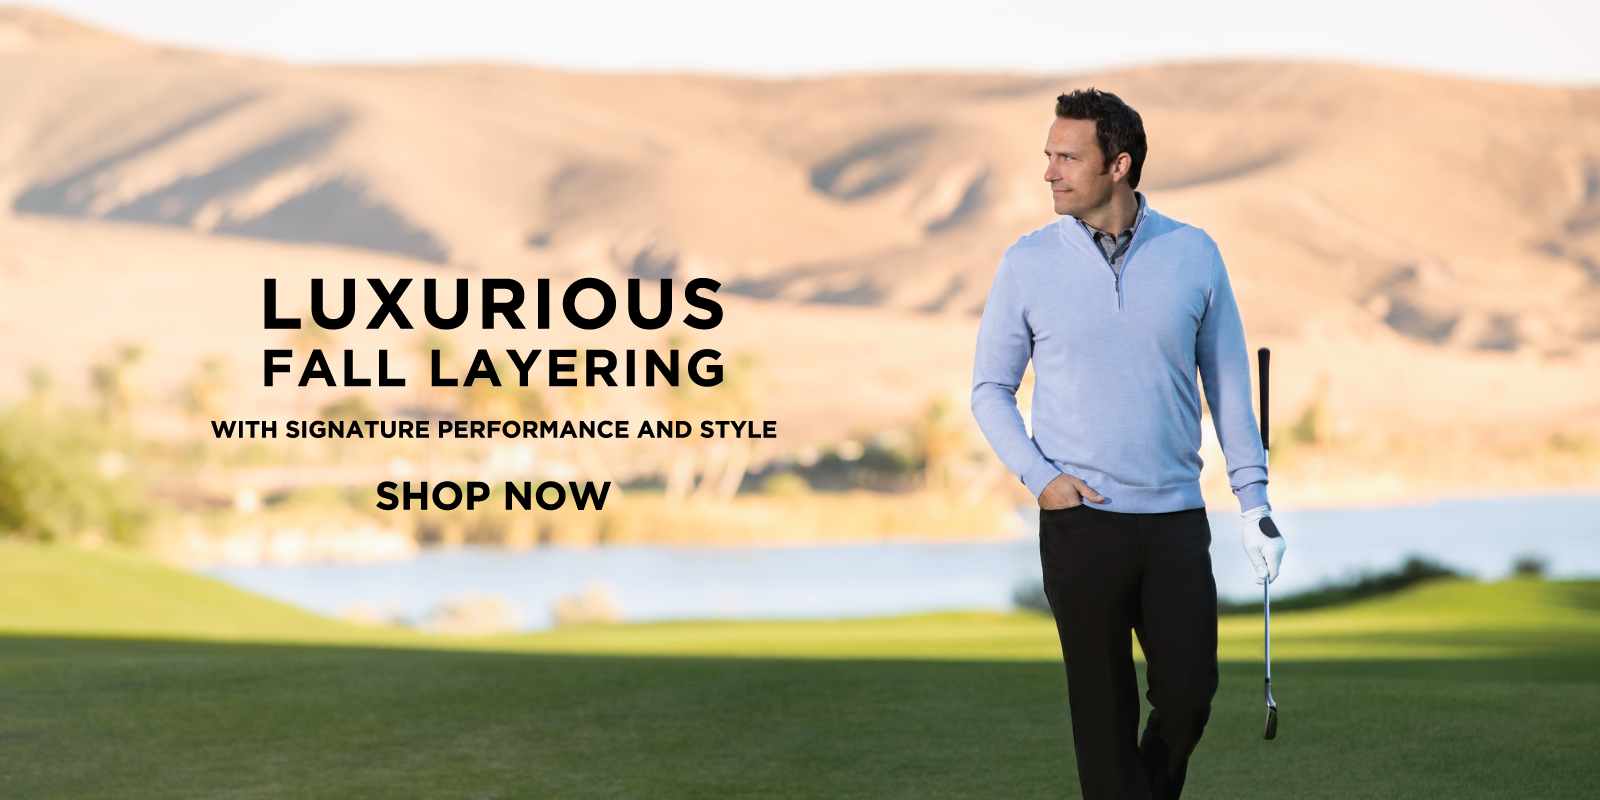 Luxurious Fall layering with signature performance and style shop now